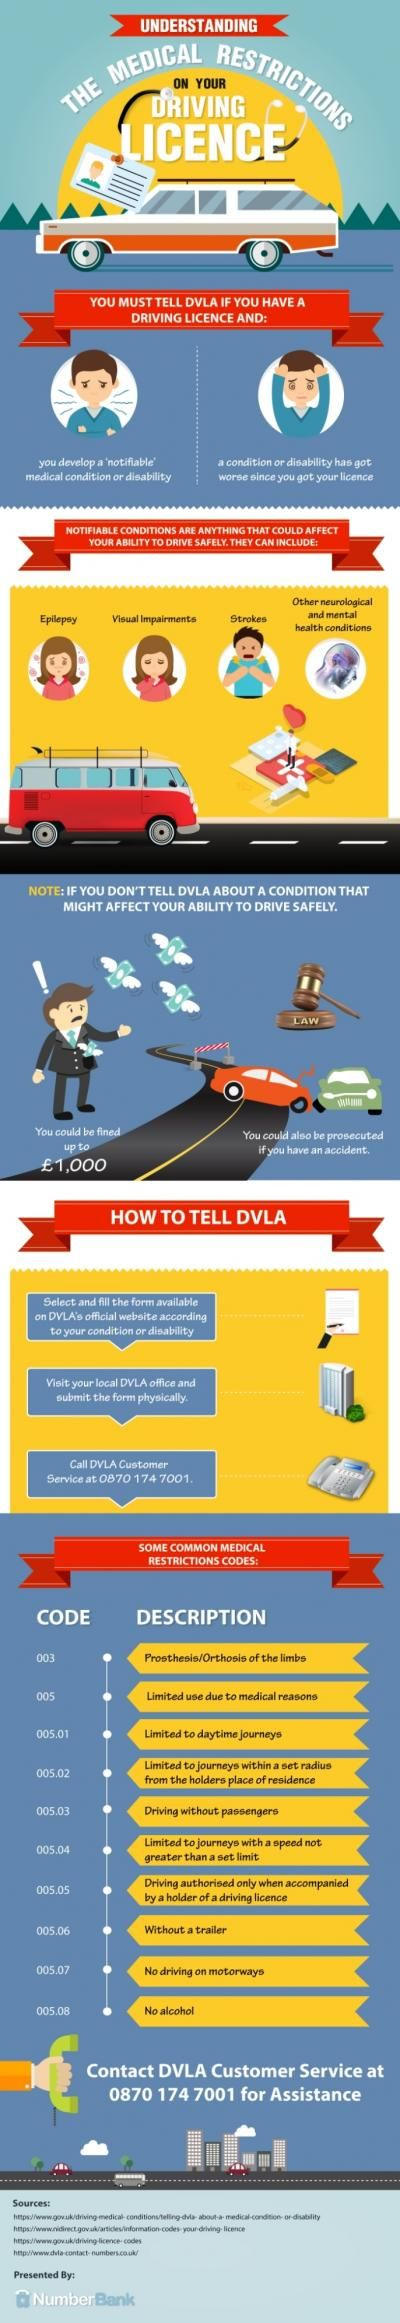 One needs to hold a valid driving licence, should be medically fit and should have no other legal issues that restrict him/her from driving the vehicle. To apply for your driving licence, contact DVLA customer care number.